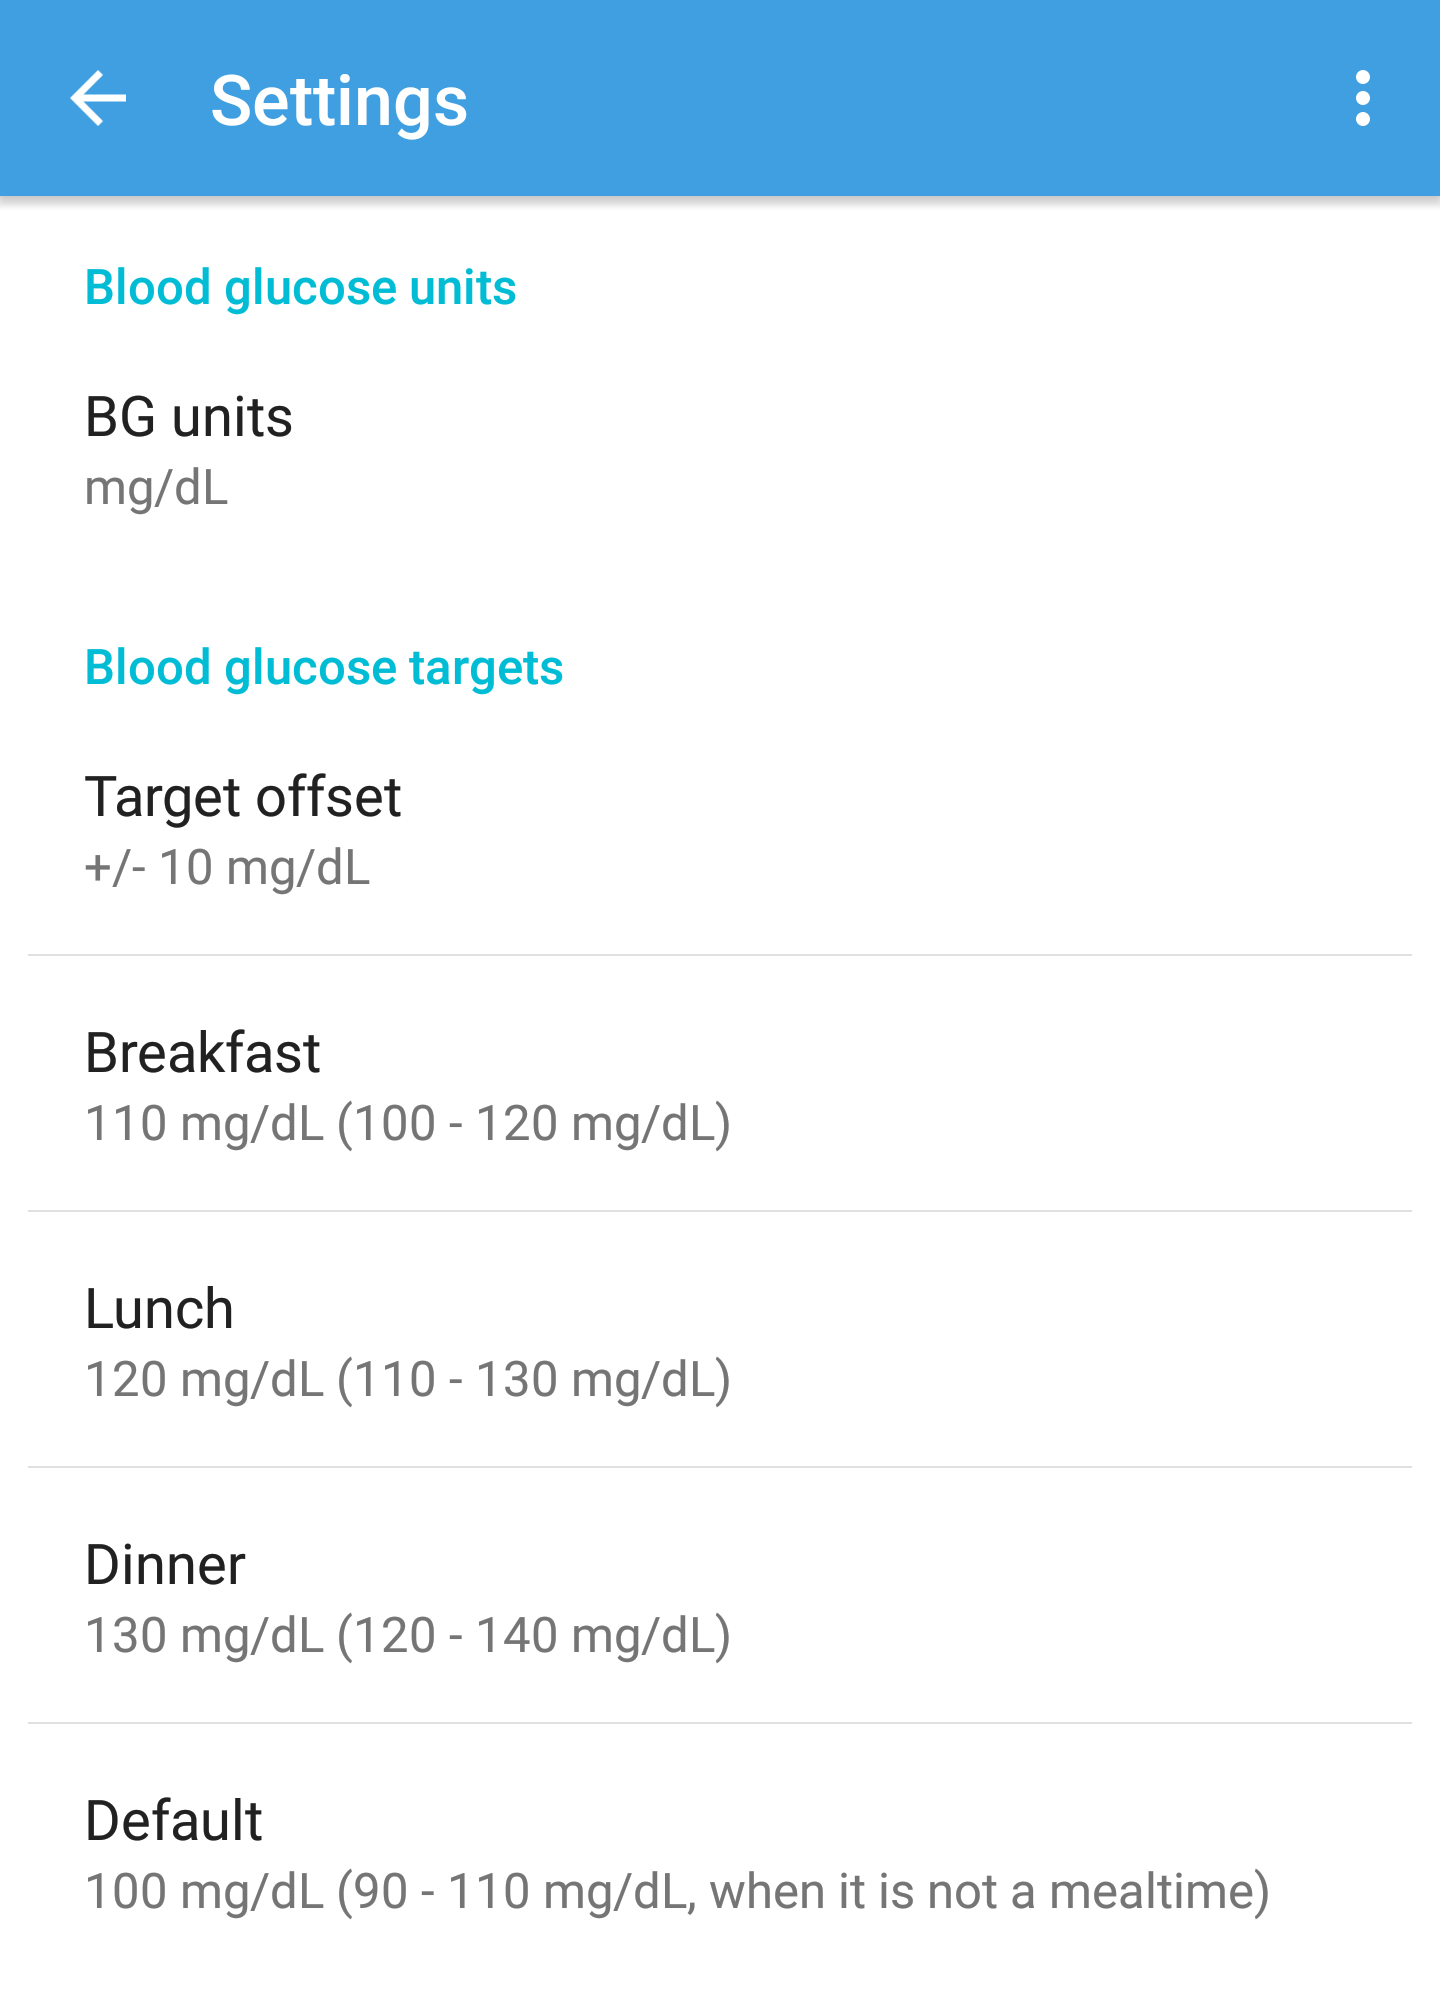 Blood glucose settings